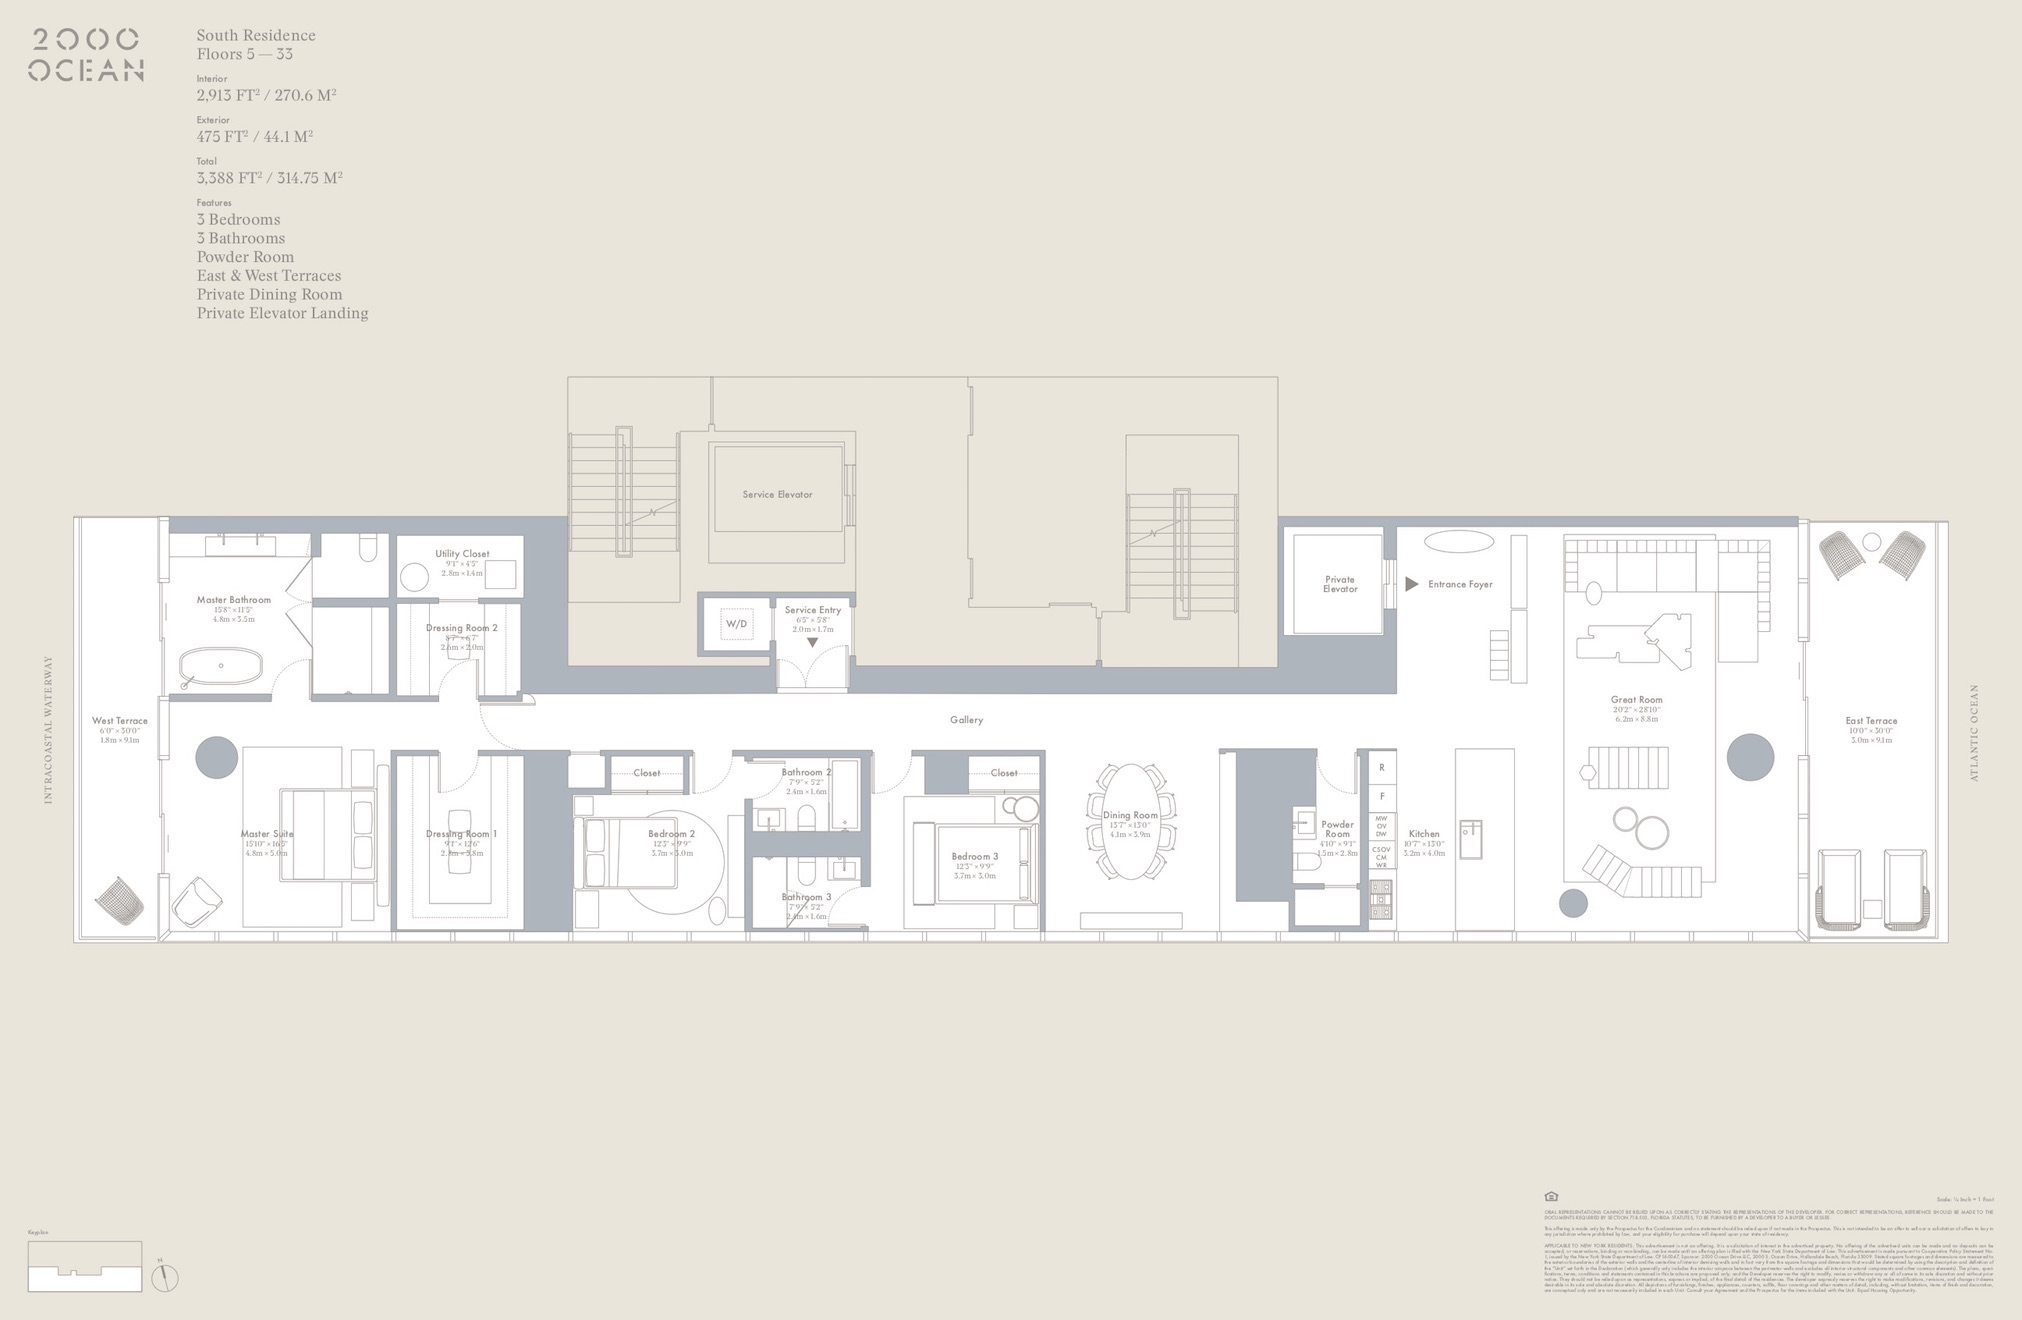 2000 Ocean suite floor plan - south residences